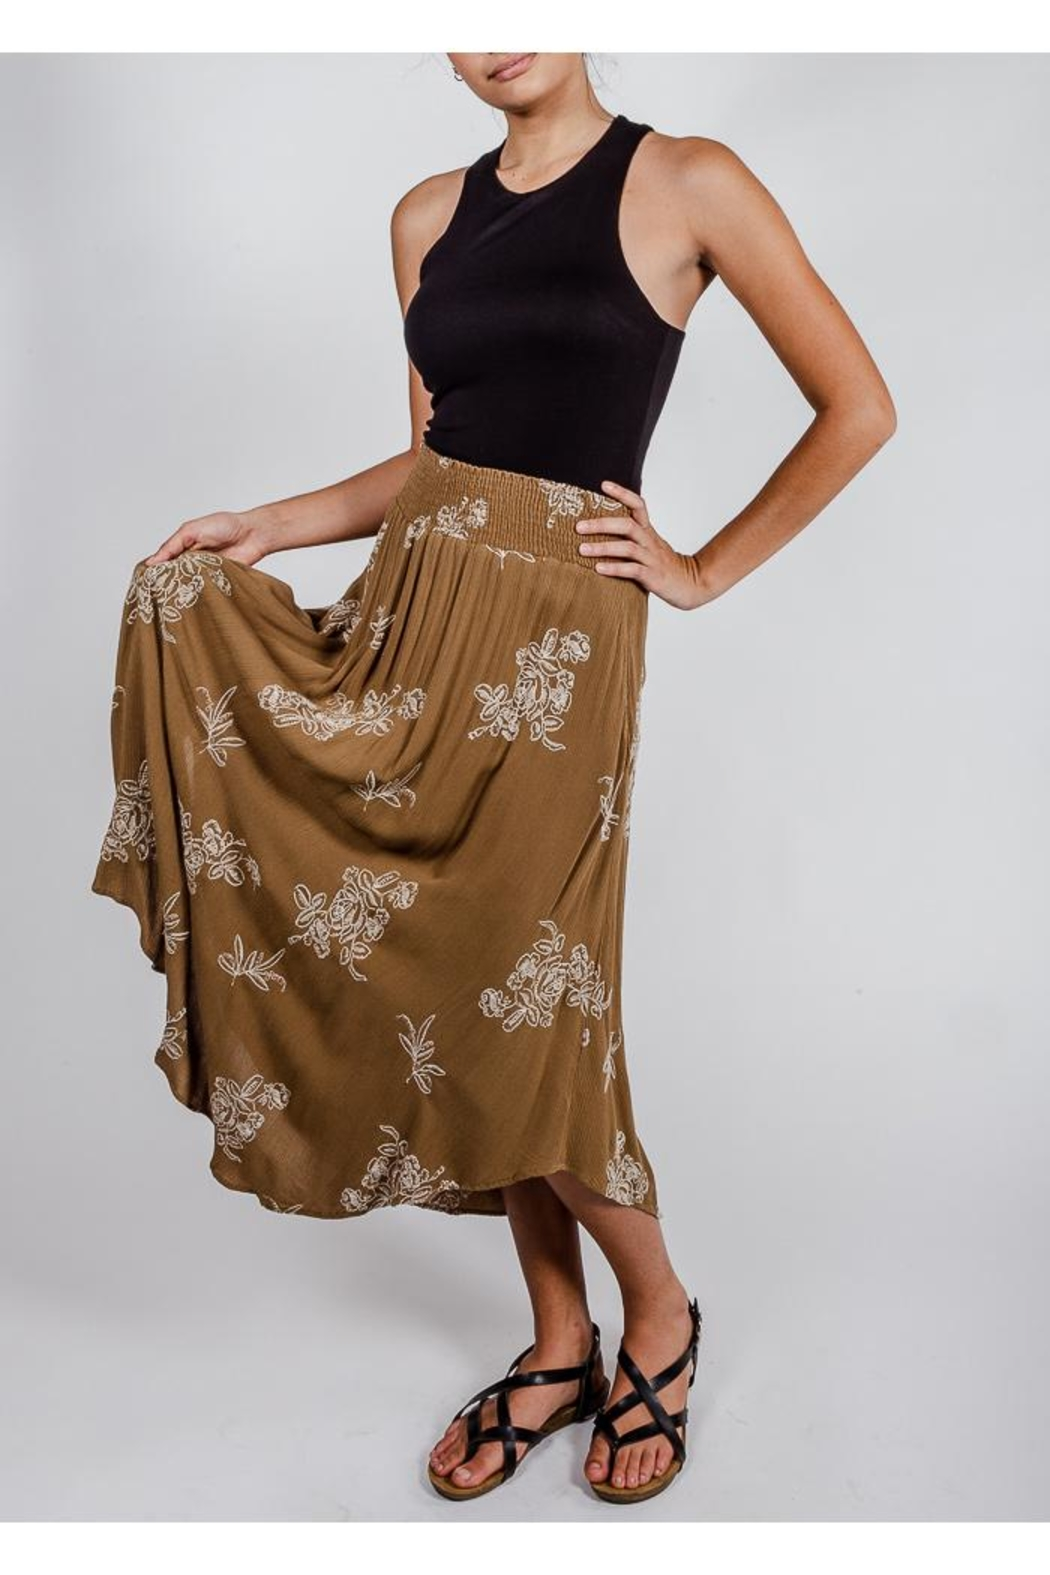 Final Touch Olive Floral Midi-Skirt - Front Full Image